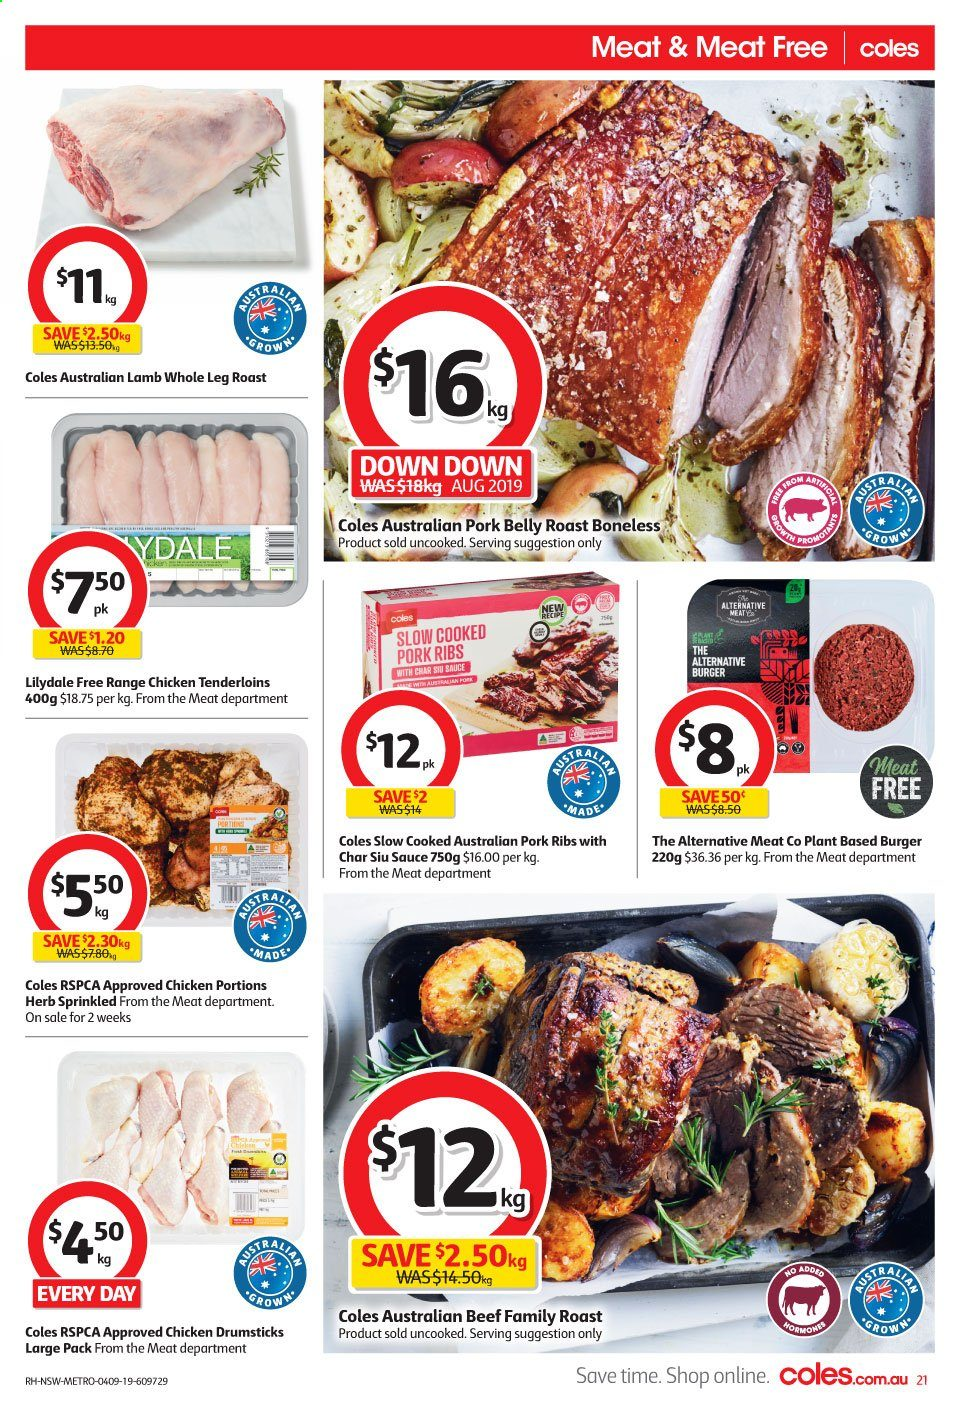 Coles catalogue and weekly specials 4 9 2019 - 10 9 2019